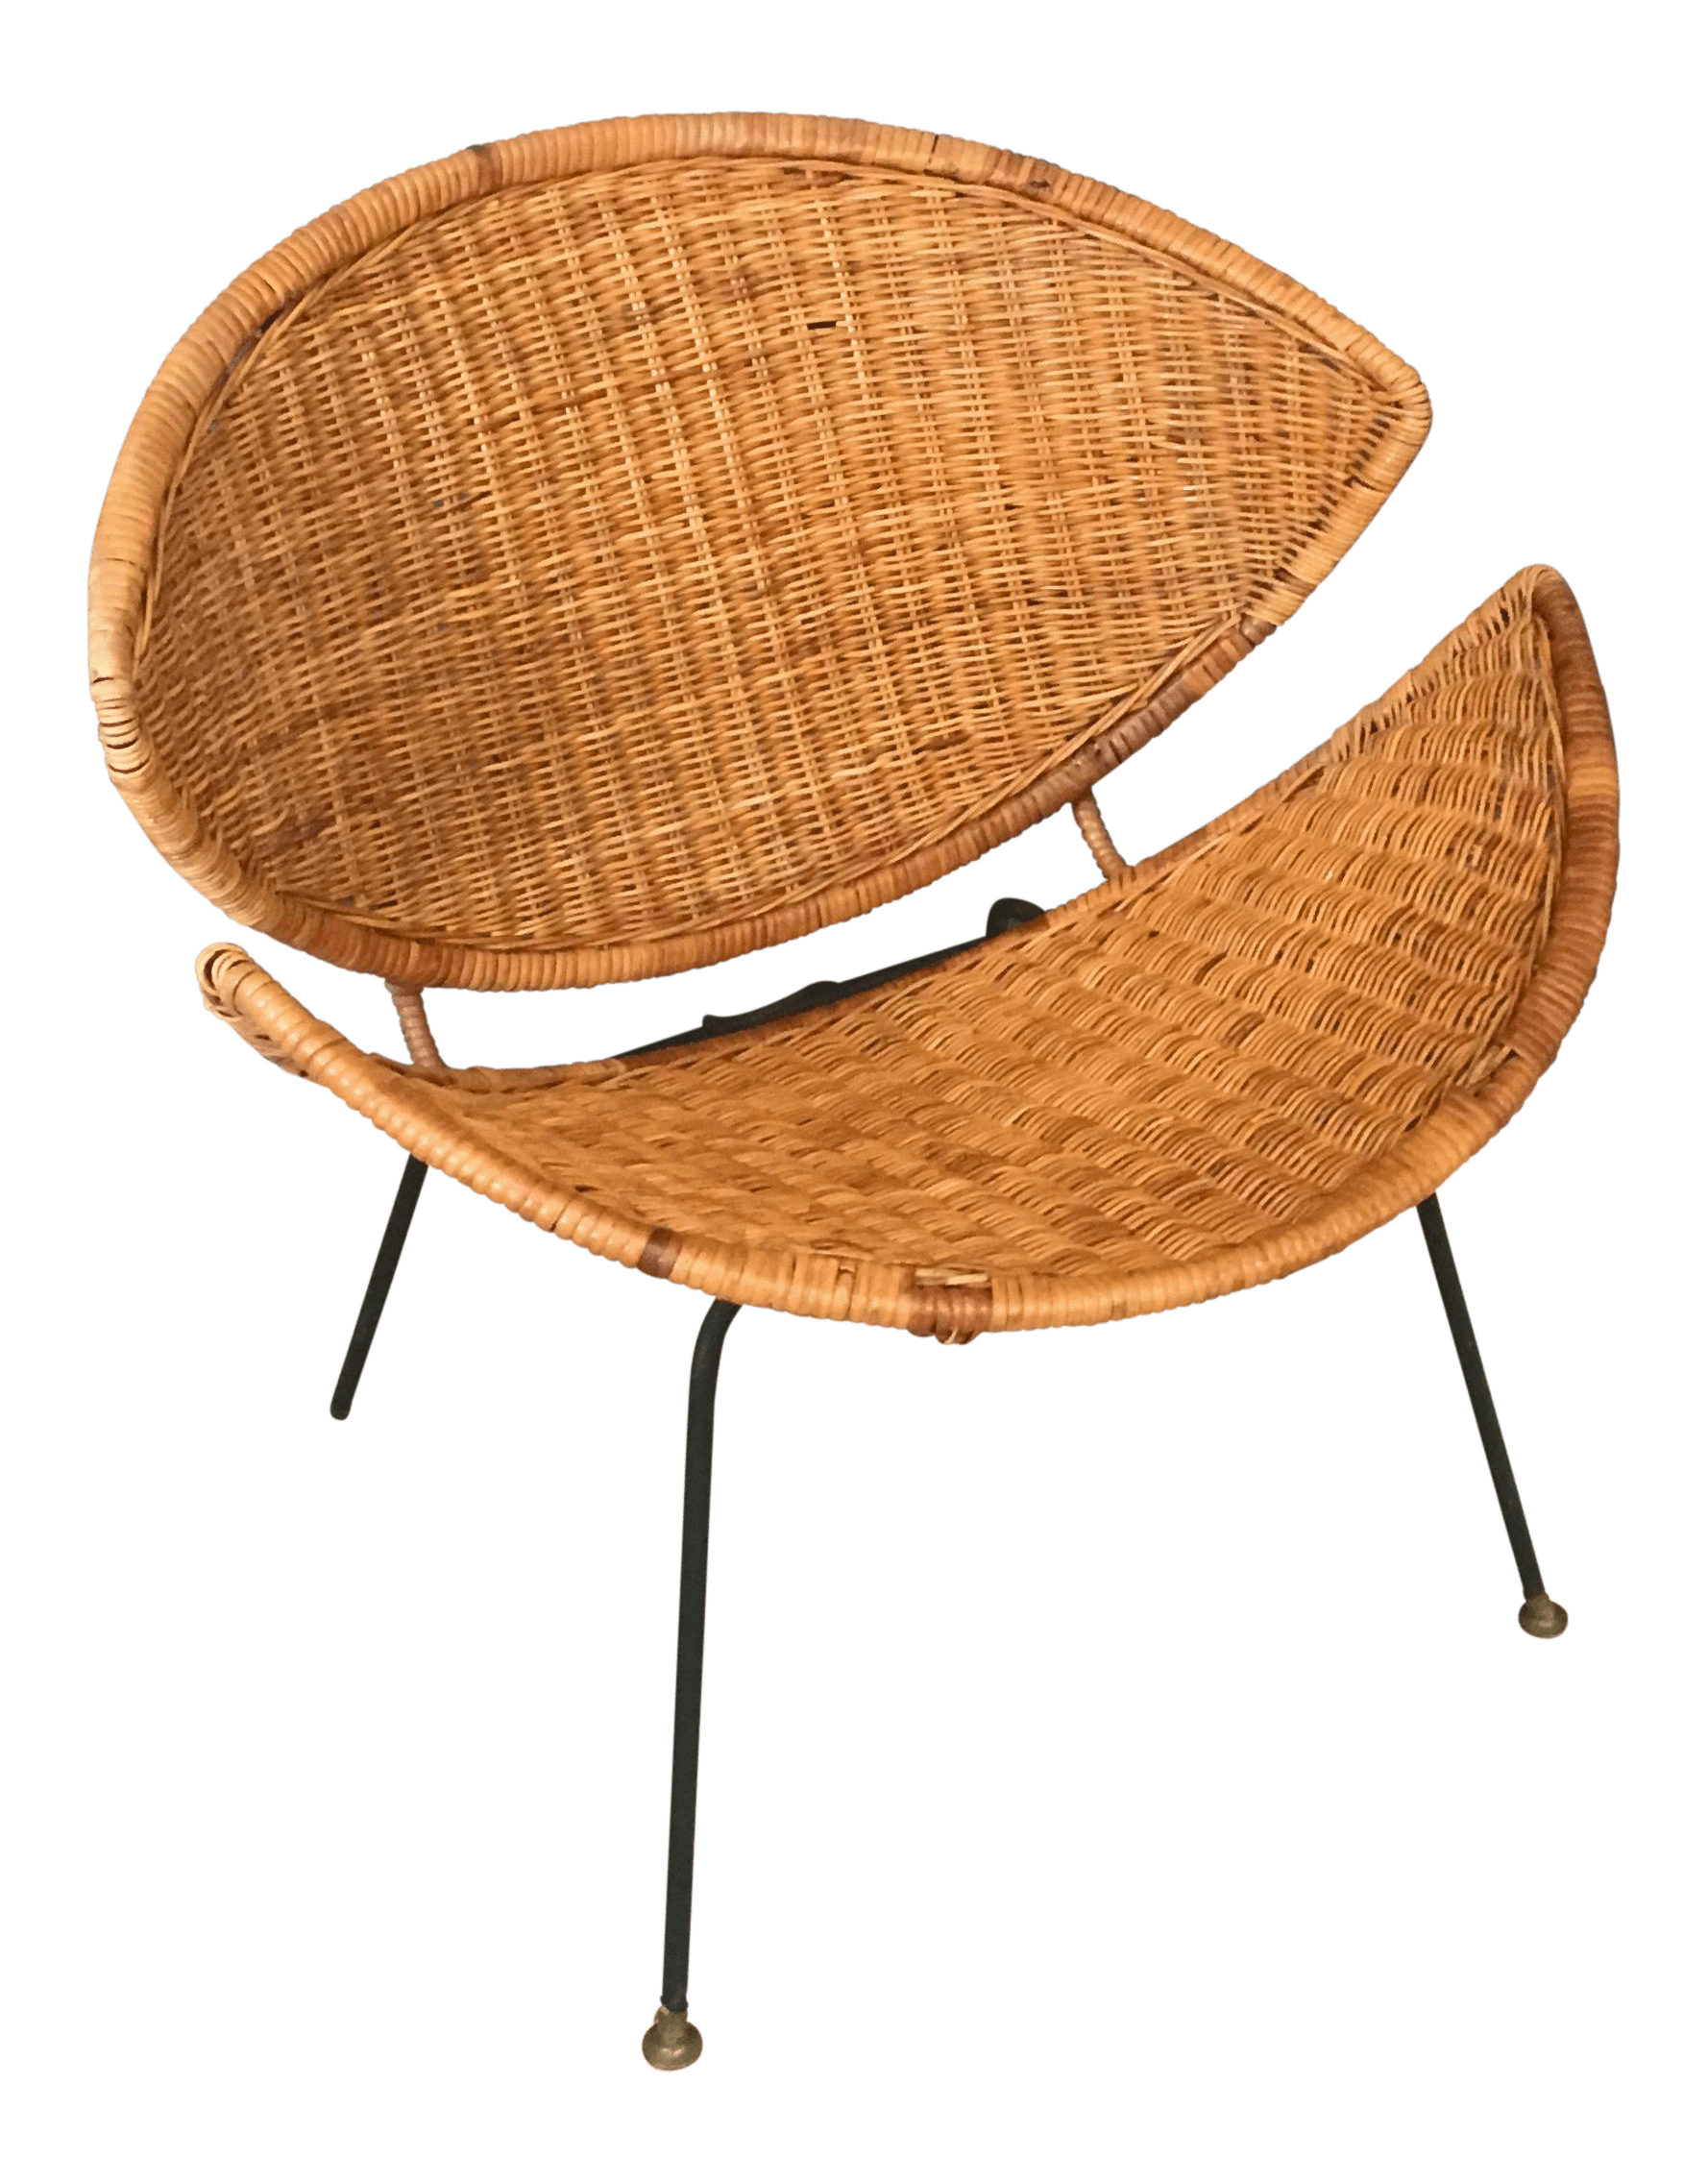 clam shell chair black spandex covers wholesale wicker and rattan chairish